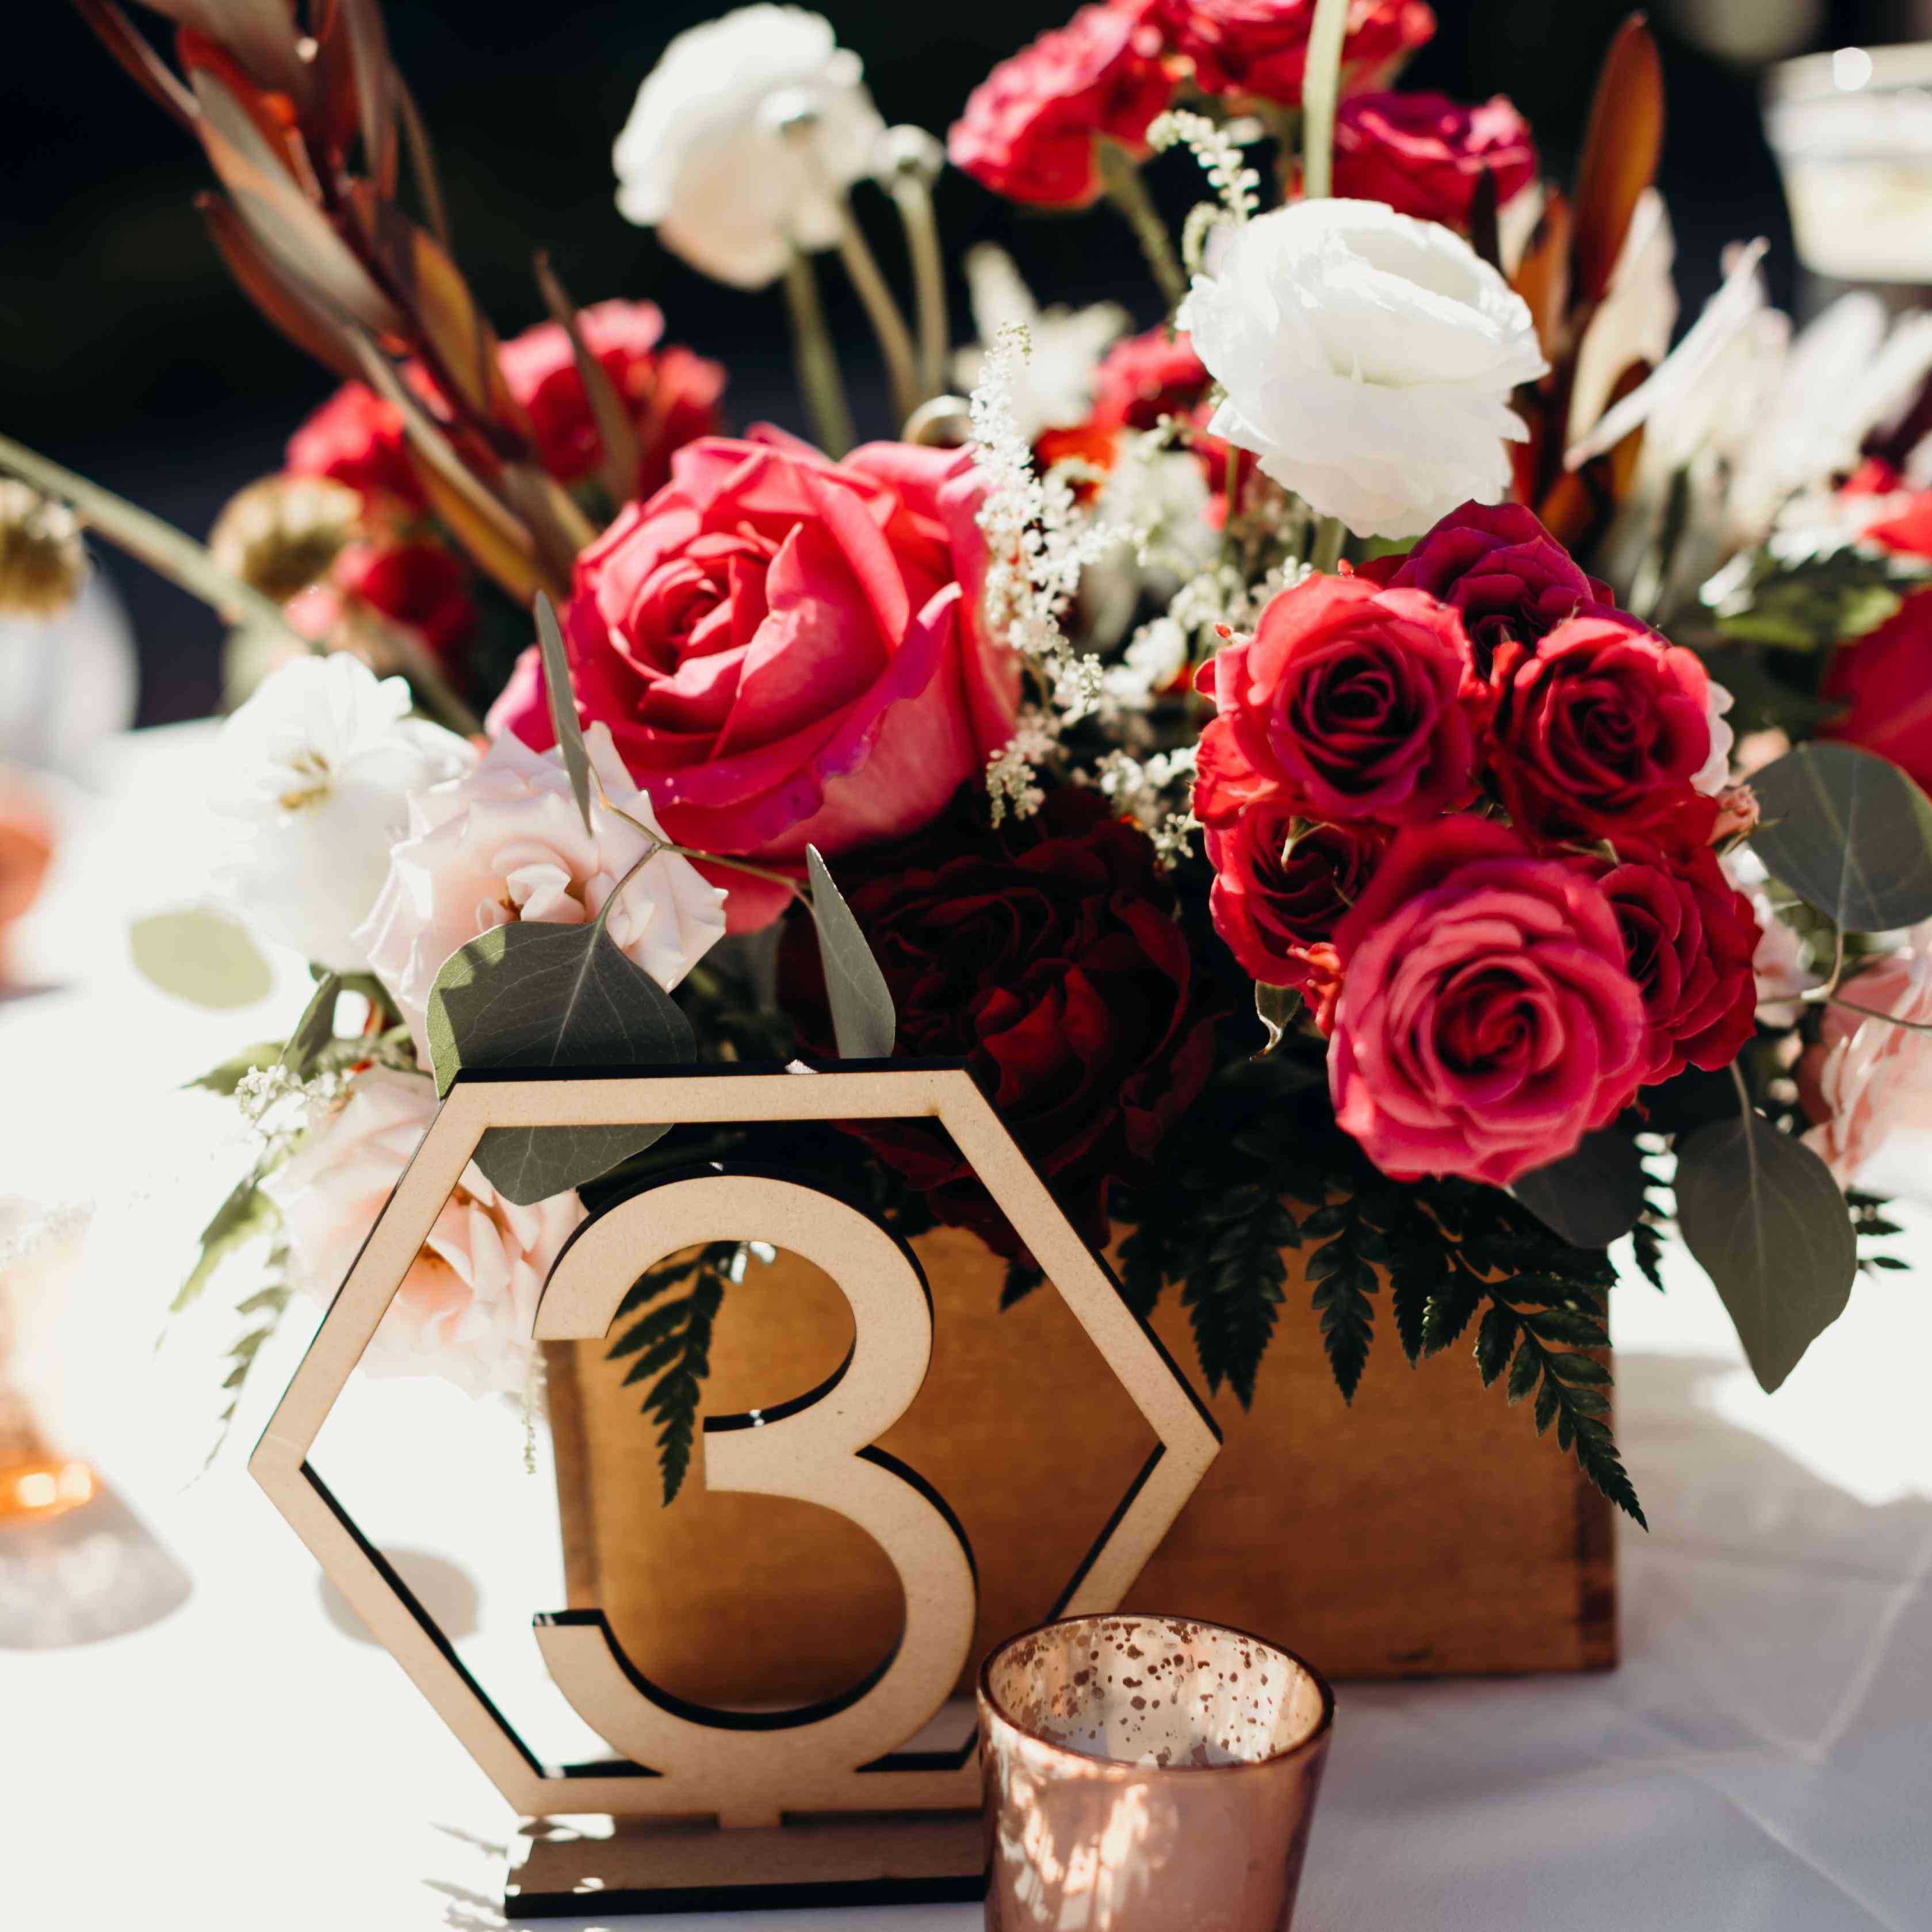 Www Wedding Flowers And Reception Ideas Com: 15 Wedding Table Decorations And Centerpieces To Spruce Up